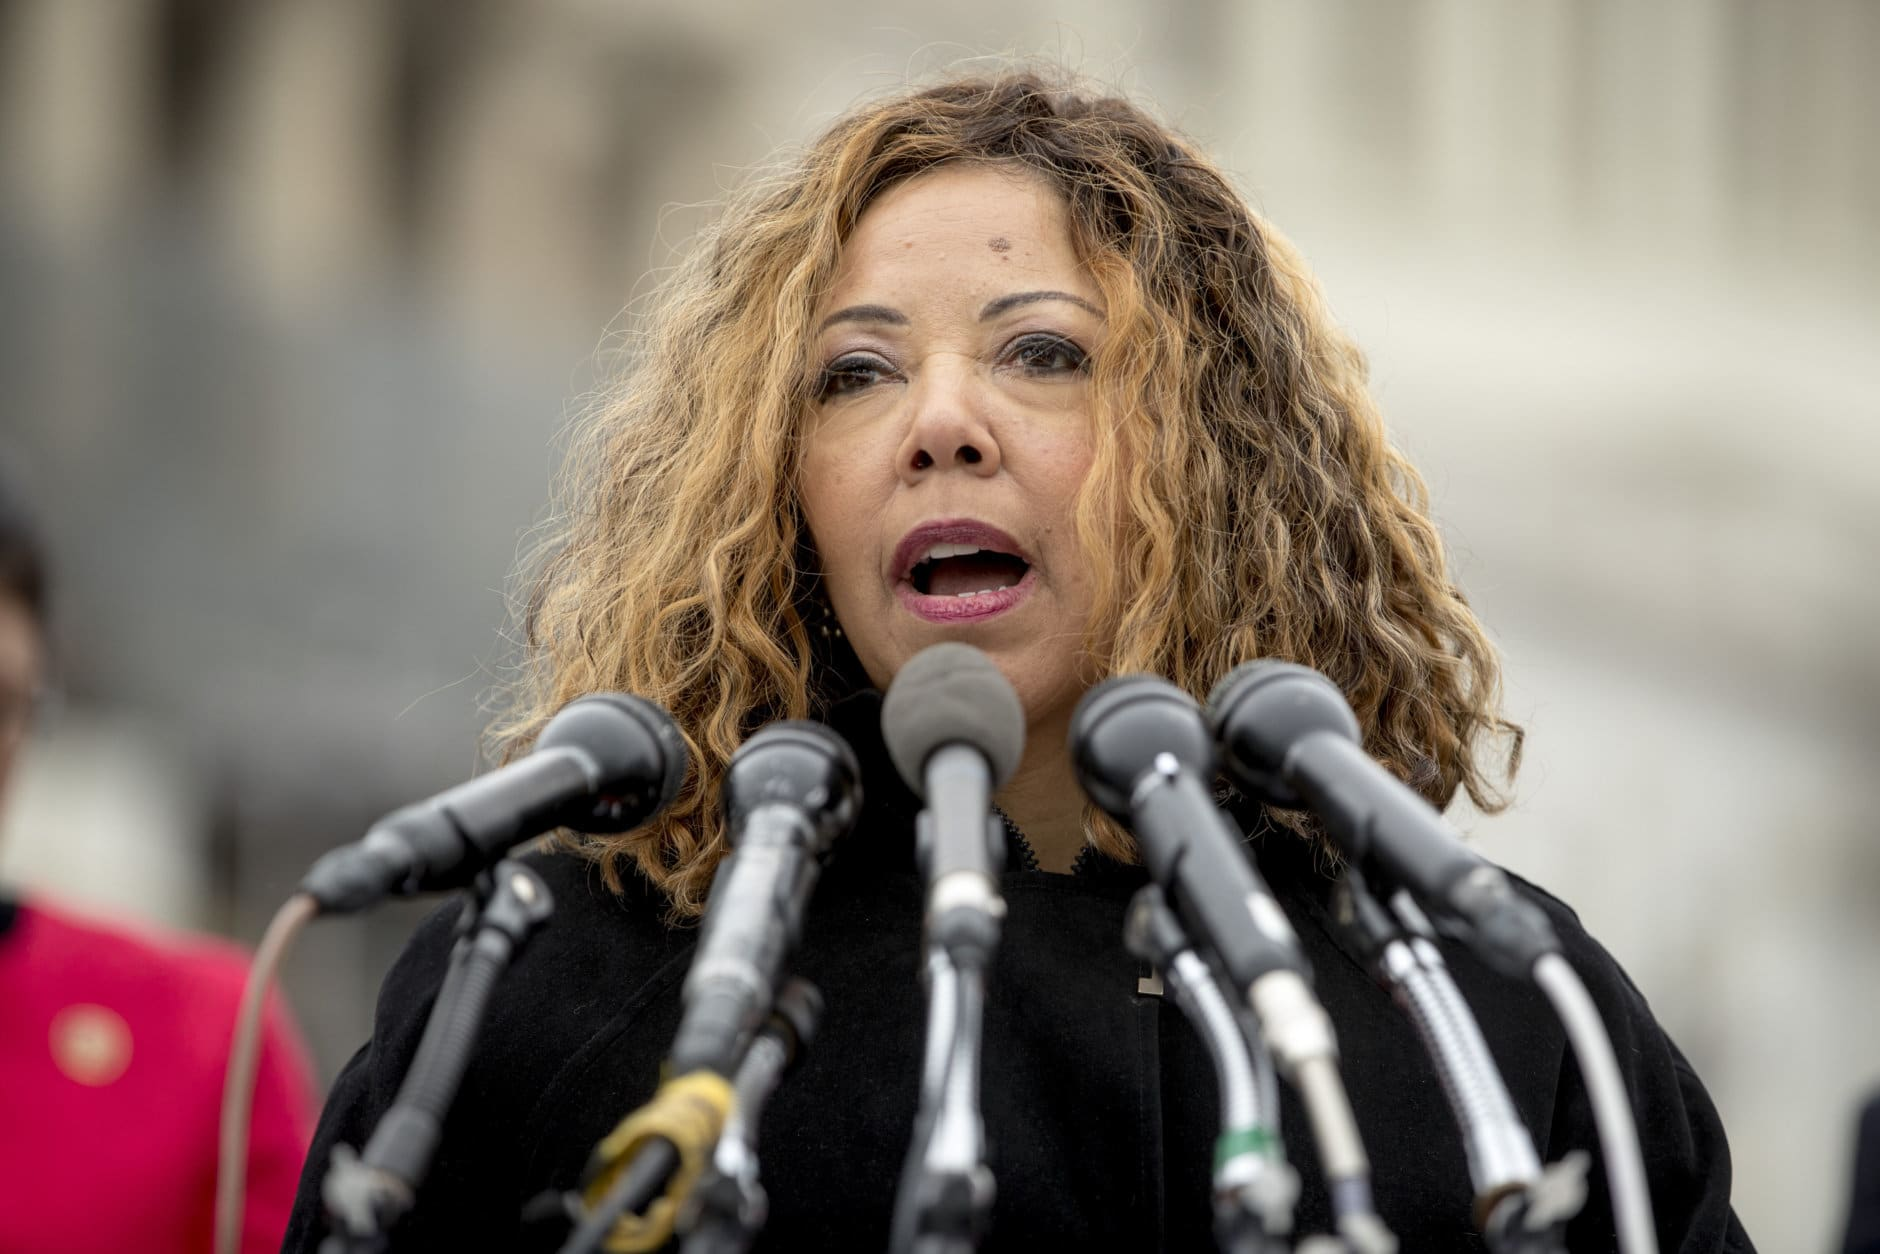 """Rep. Lucy McBath, D-Ga., speaks at a news conference on Capitol Hill in Washington, Thursday, Jan. 17, 2019, to unveil the """"Immediate Financial Relief for Federal Employees Act"""" bill which would give zero interest loans for up to $6,000 to employees impacted by the government shutdown and any future shutdowns. (AP Photo/Andrew Harnik)"""